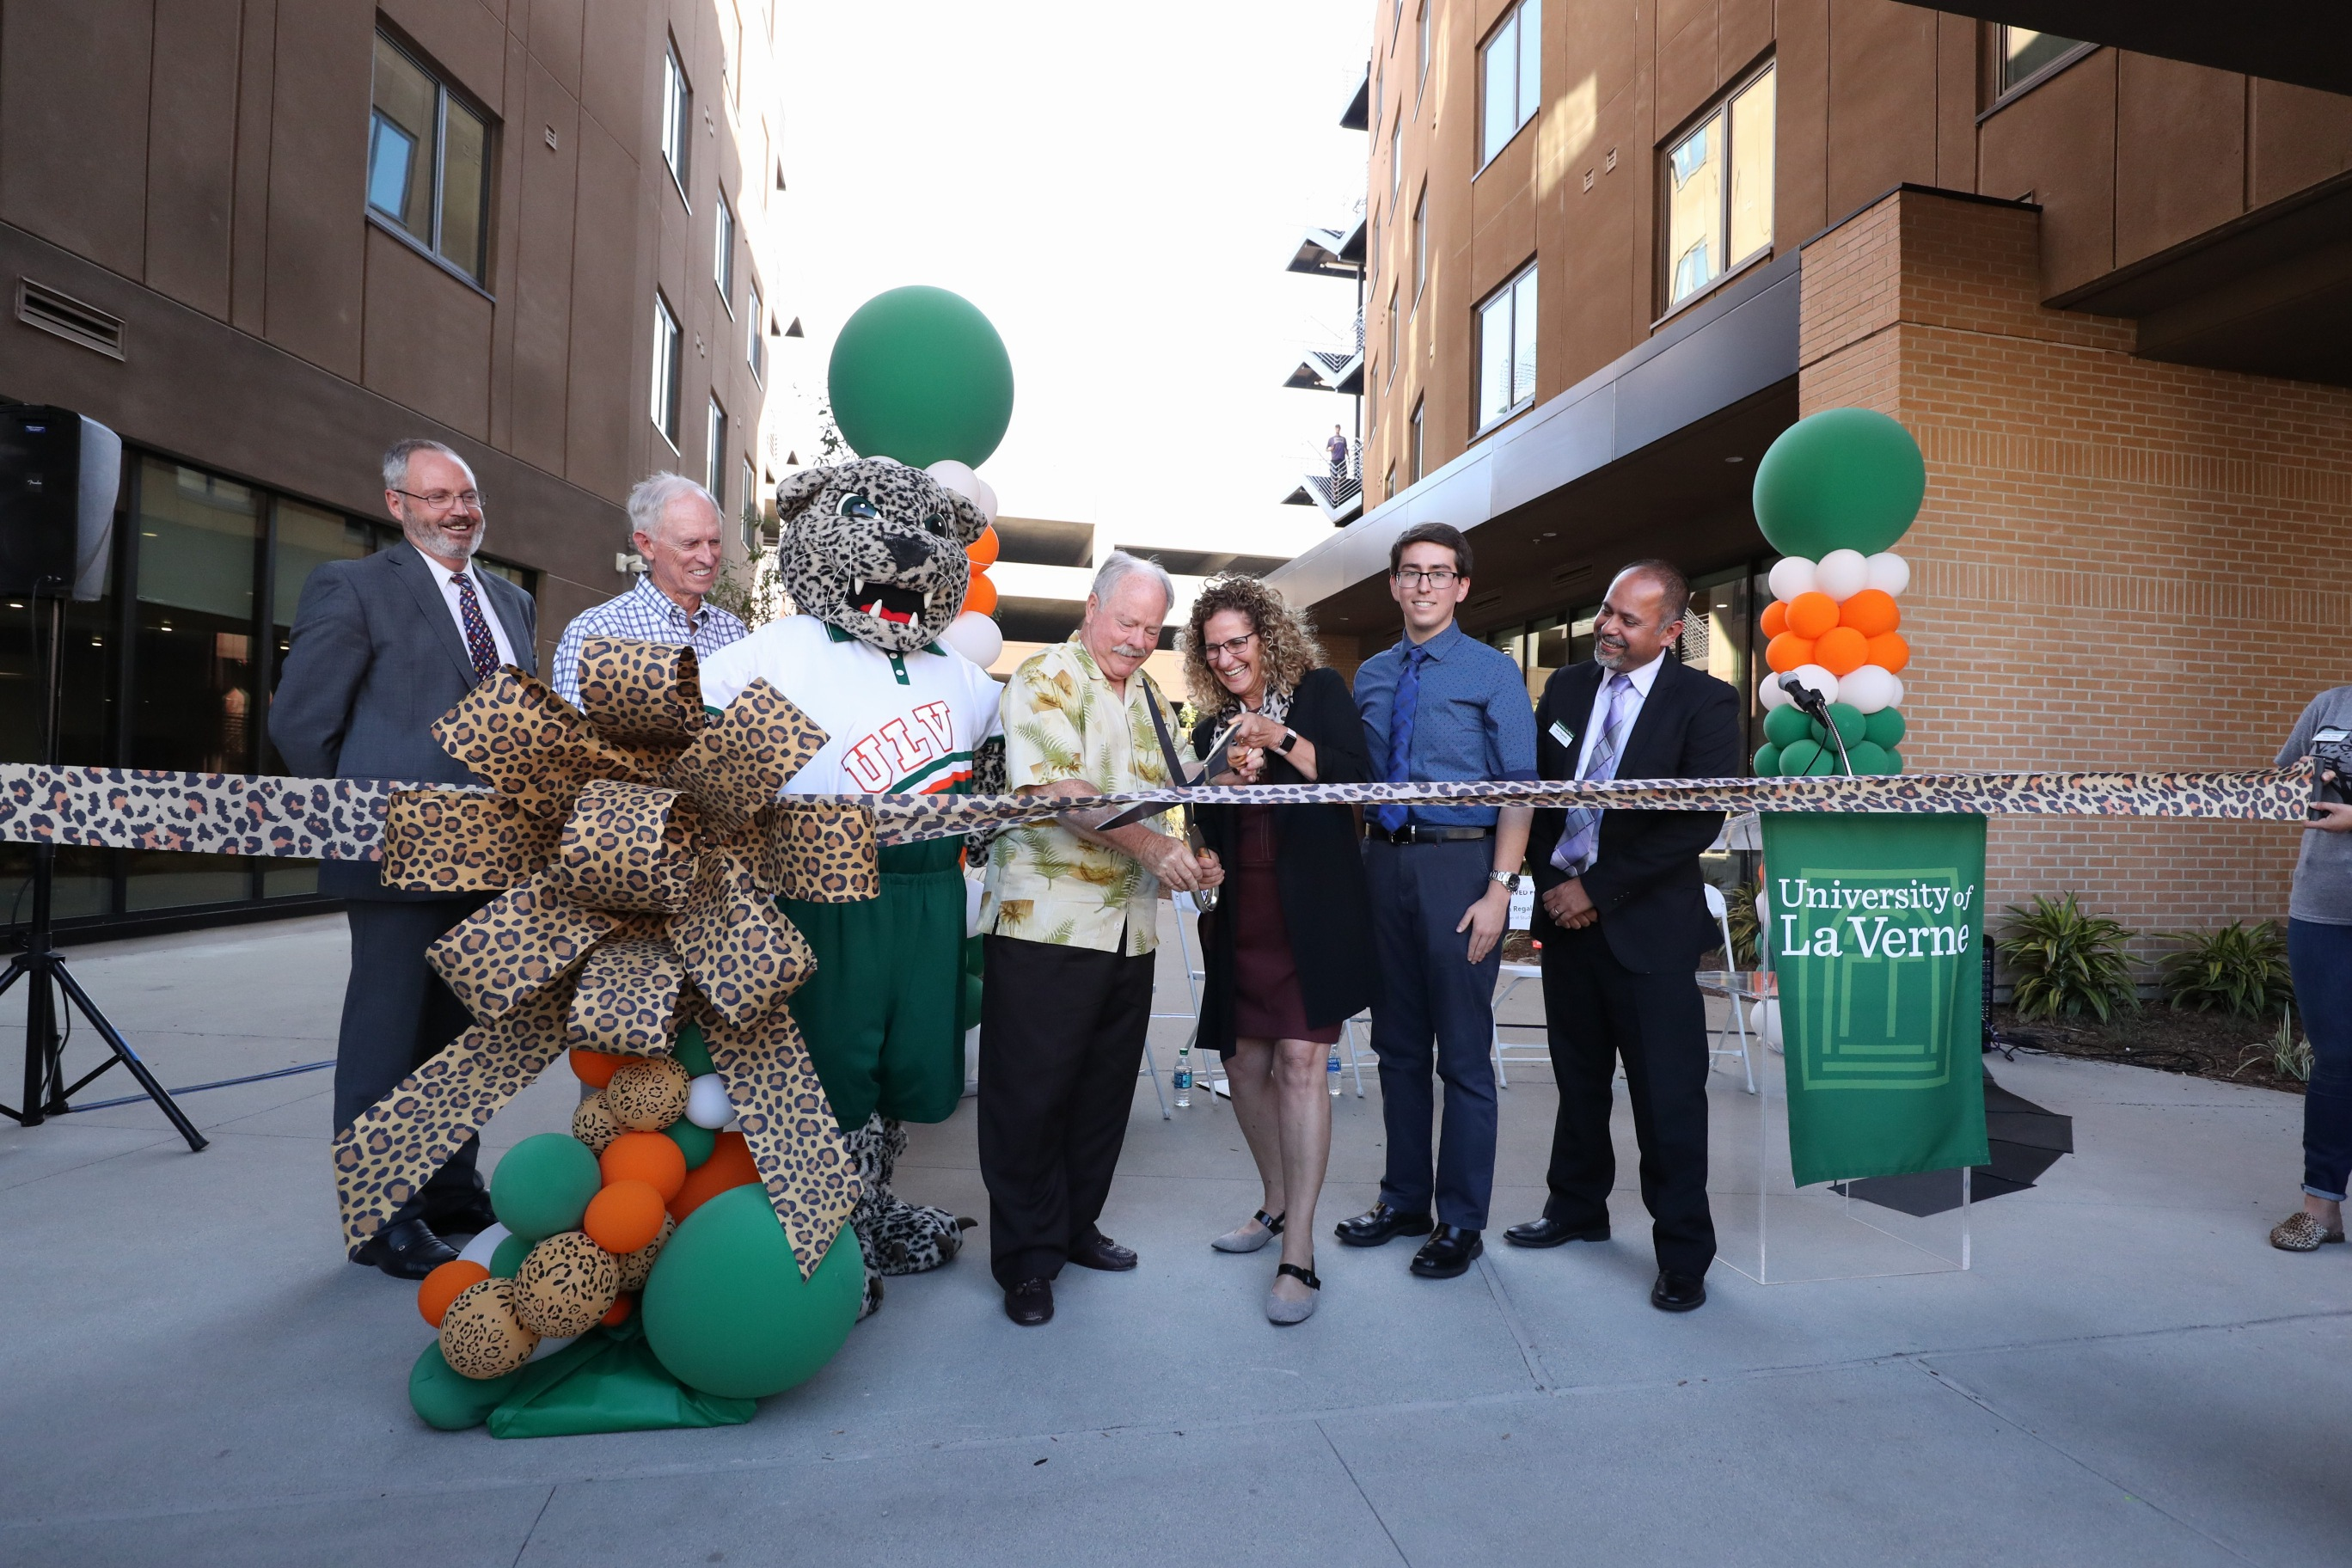 President Devorah Lieberman and La Verne Mayor Don Kendrick cut the ribbon at the grand opening celebration for Citrus Hall and The Spot at the University of La Verne.